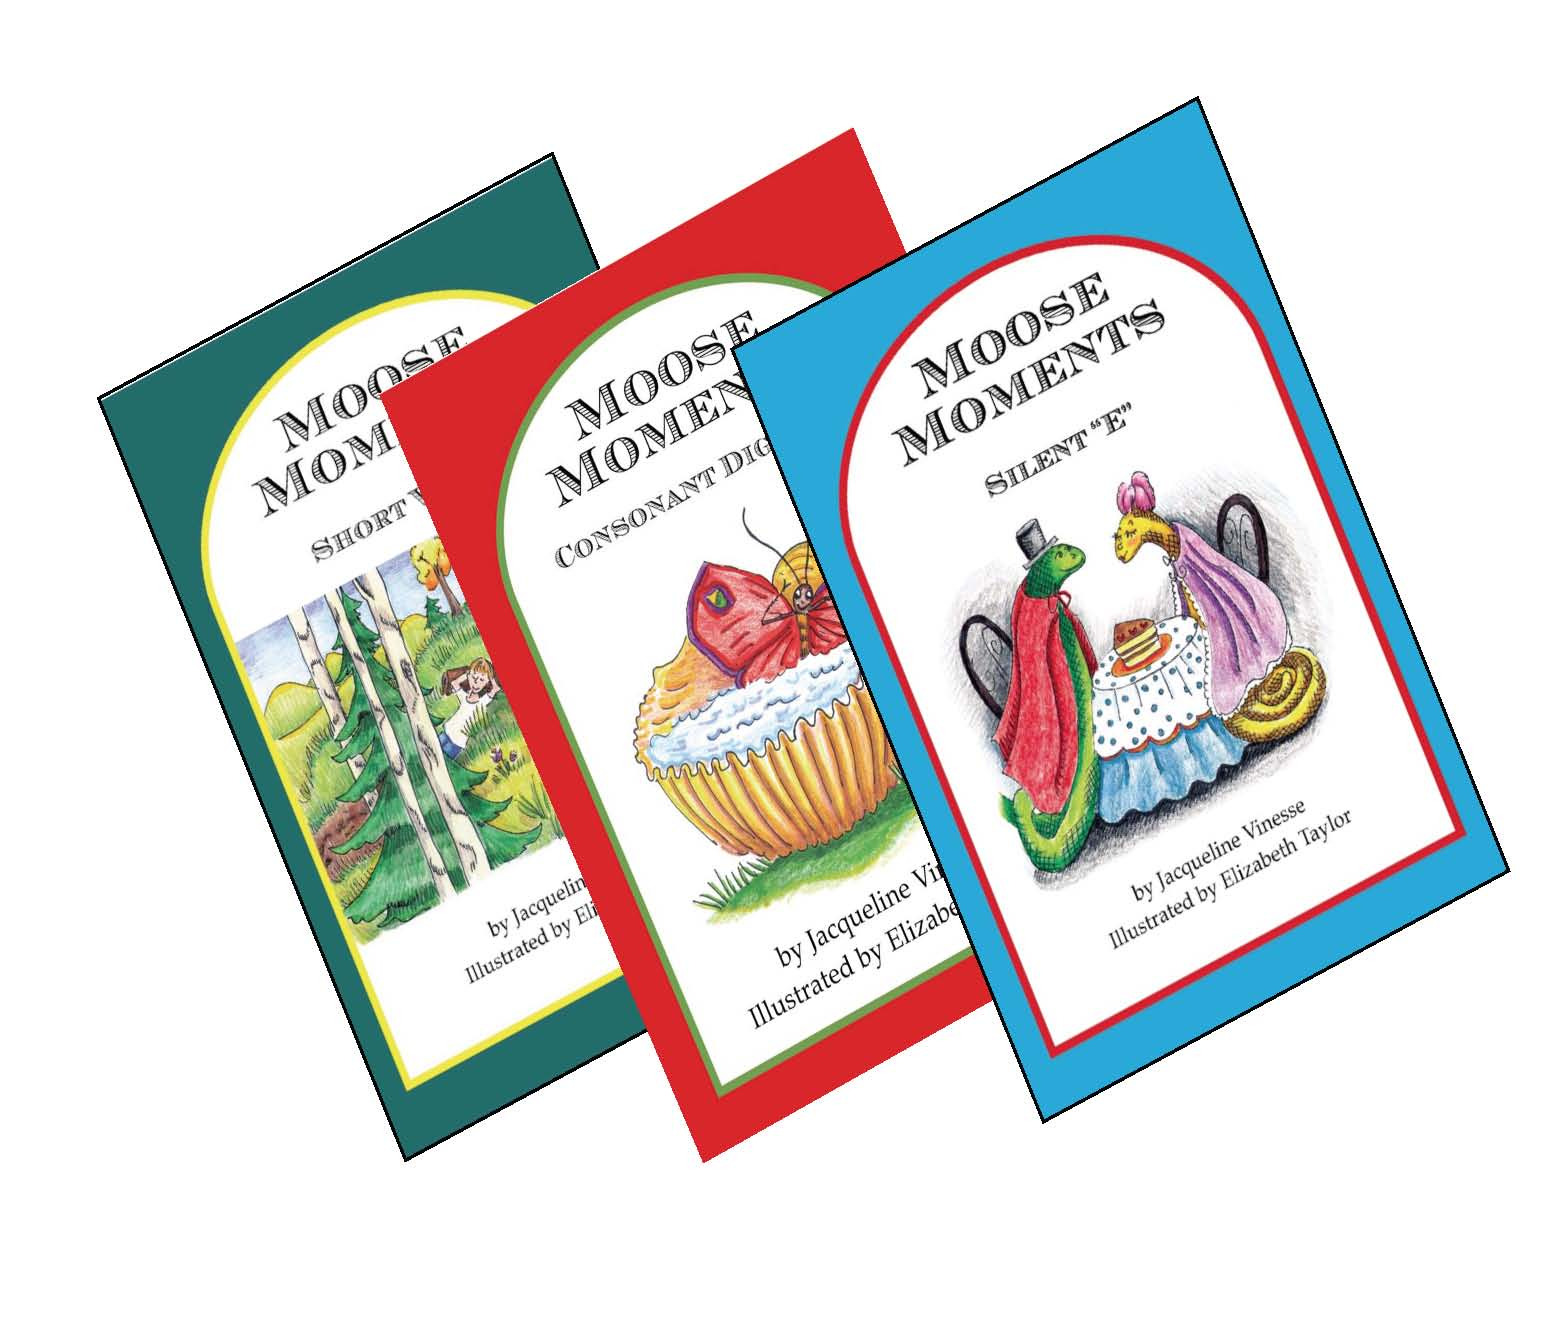 Set of 3 Moose Moments Books (MMSV, MMDI, MMSE)